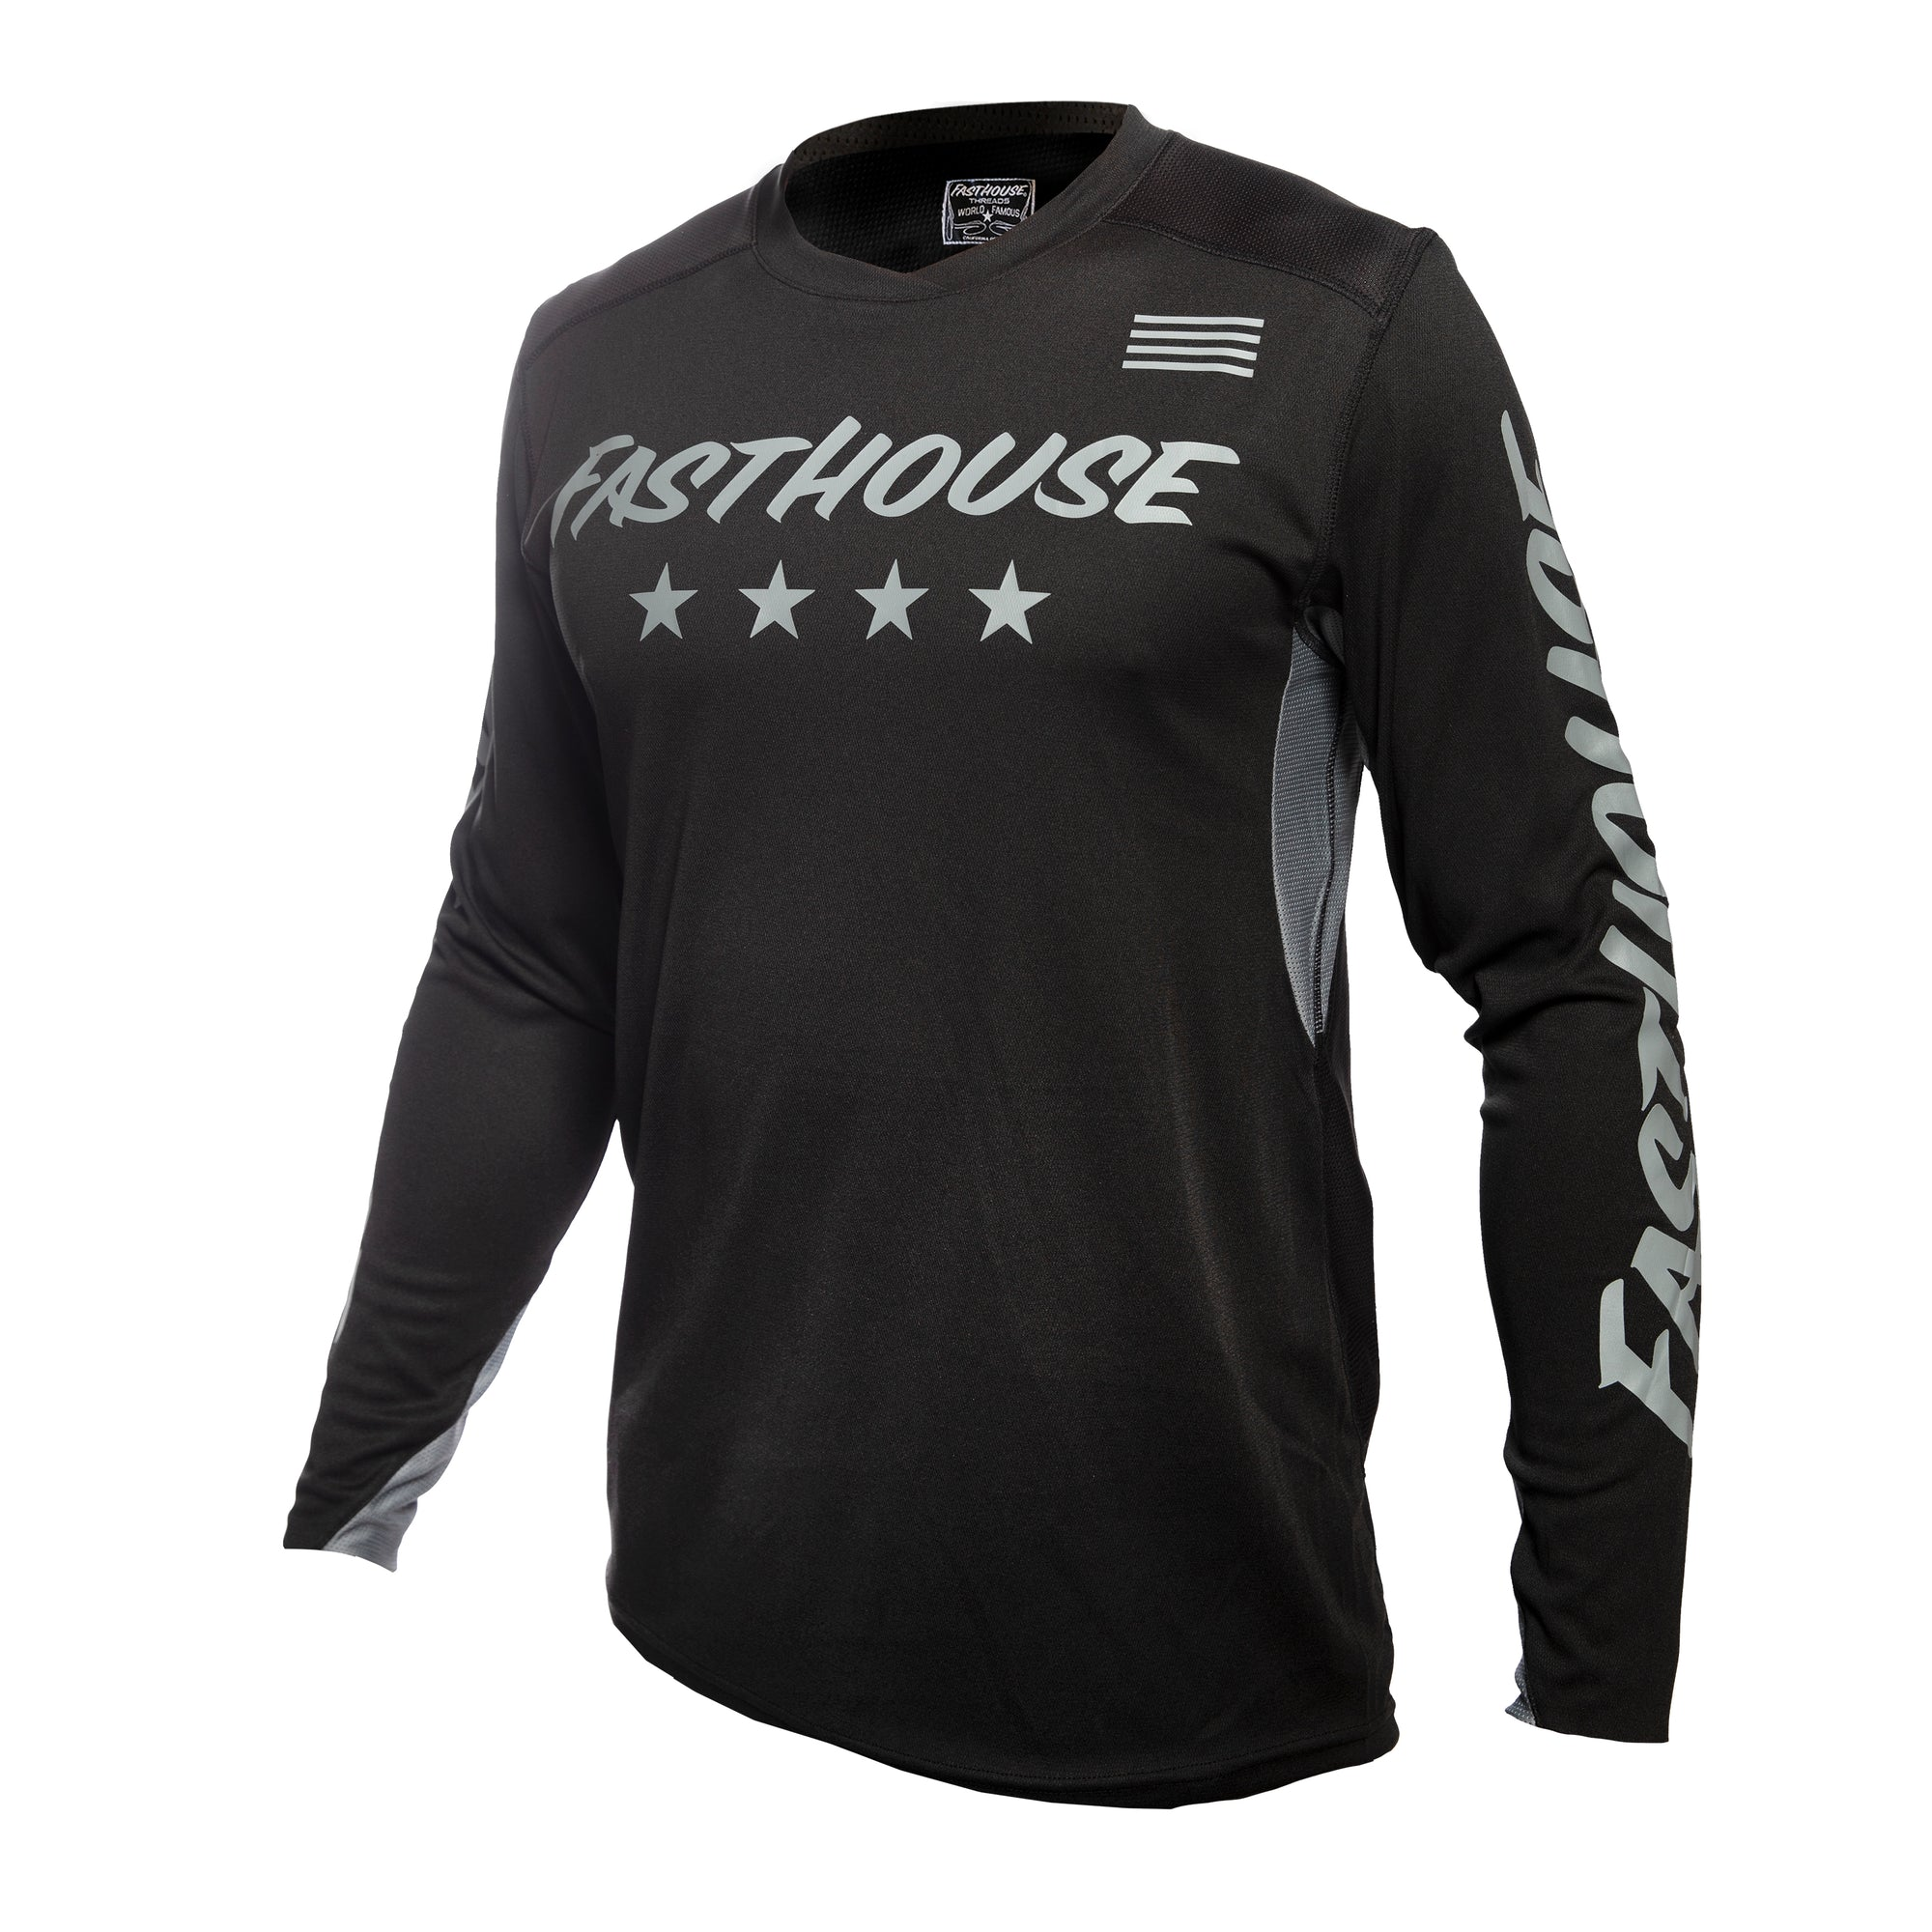 Fasthouse - Raven L1 Jersey - Black/Grey